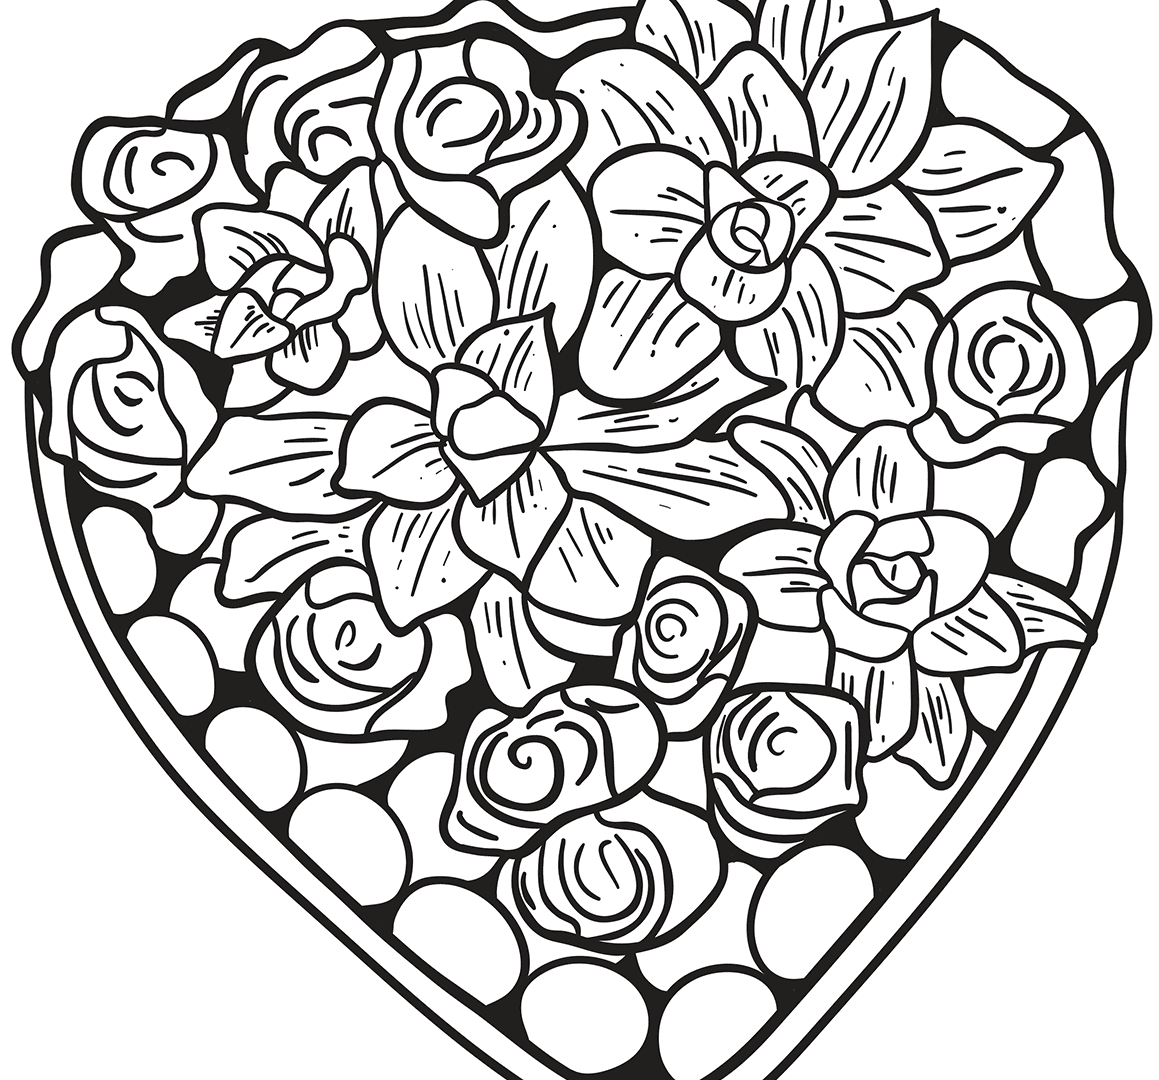 1159x1080 Marvelous Coloring Pages Heart For Kids Book Of Roses And Hearts